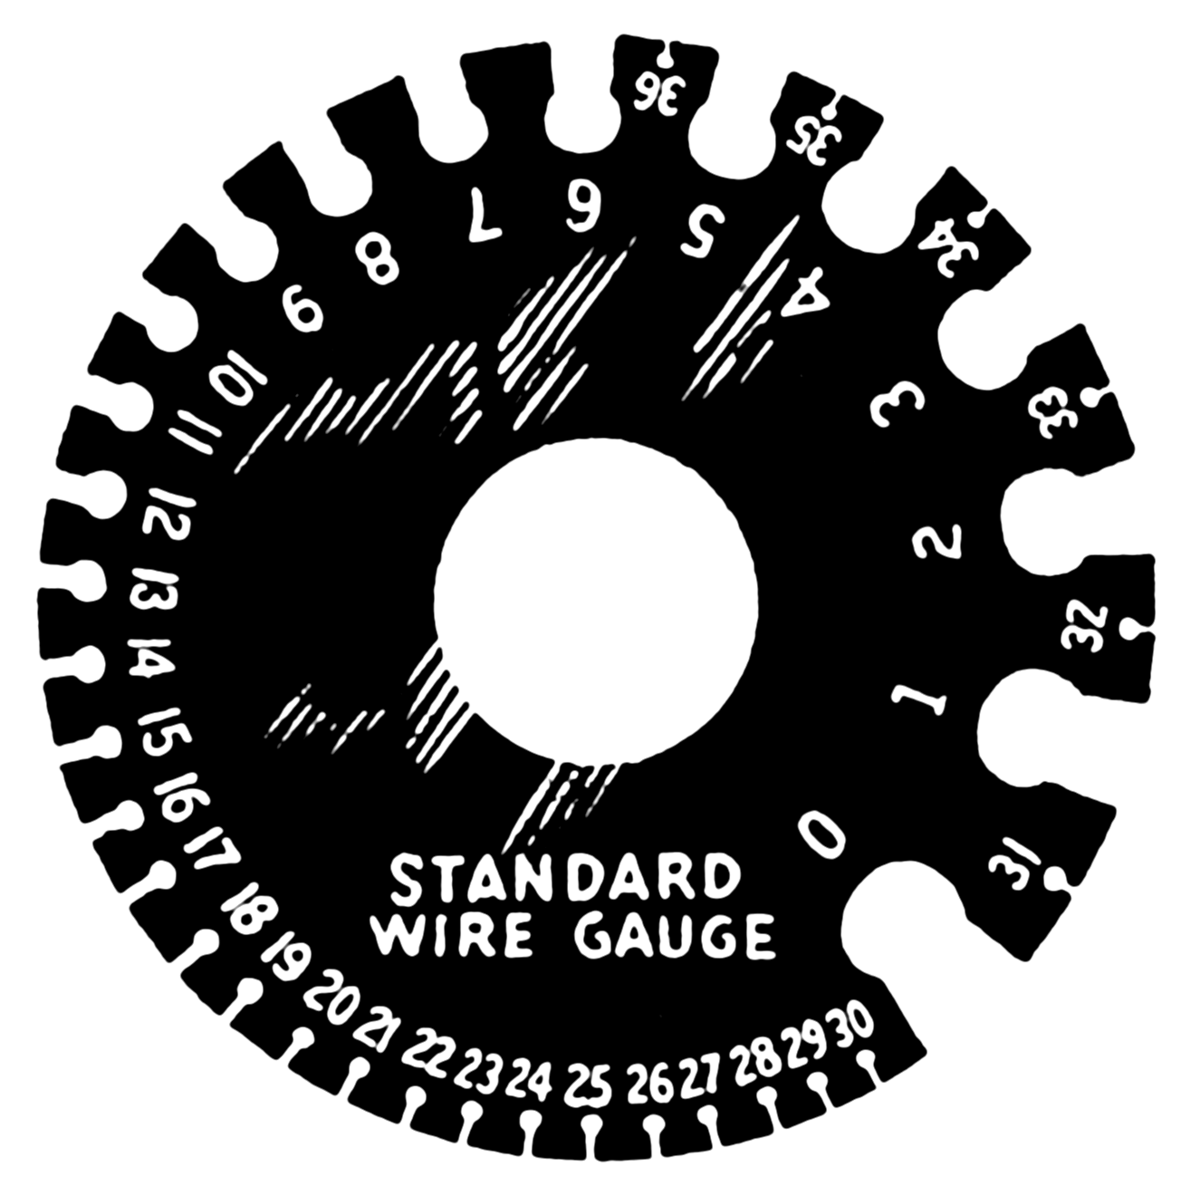 image of a standard wire guage